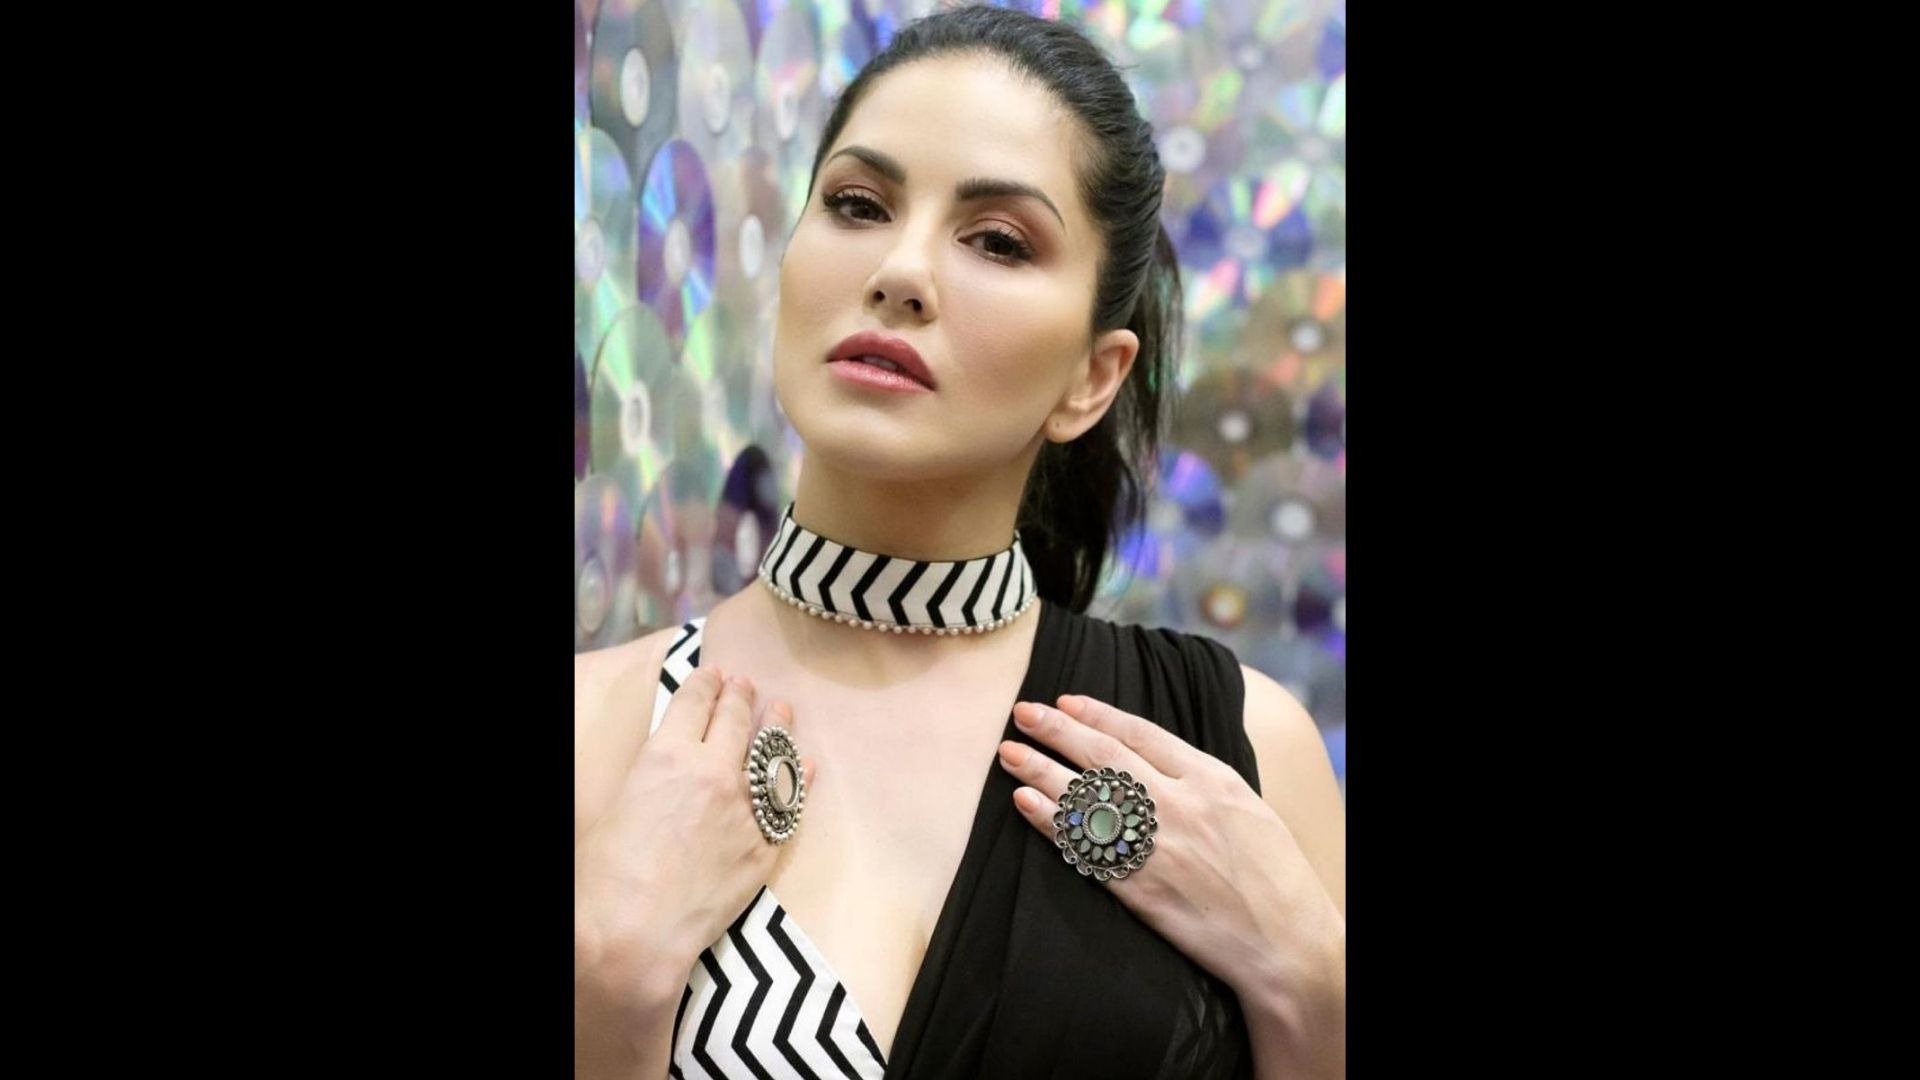 Sunny Leone Looks Breathtakingly Hot In Her Black Saree And Striped Blouse; Her Pictures Will Make Your Hearts Flutter